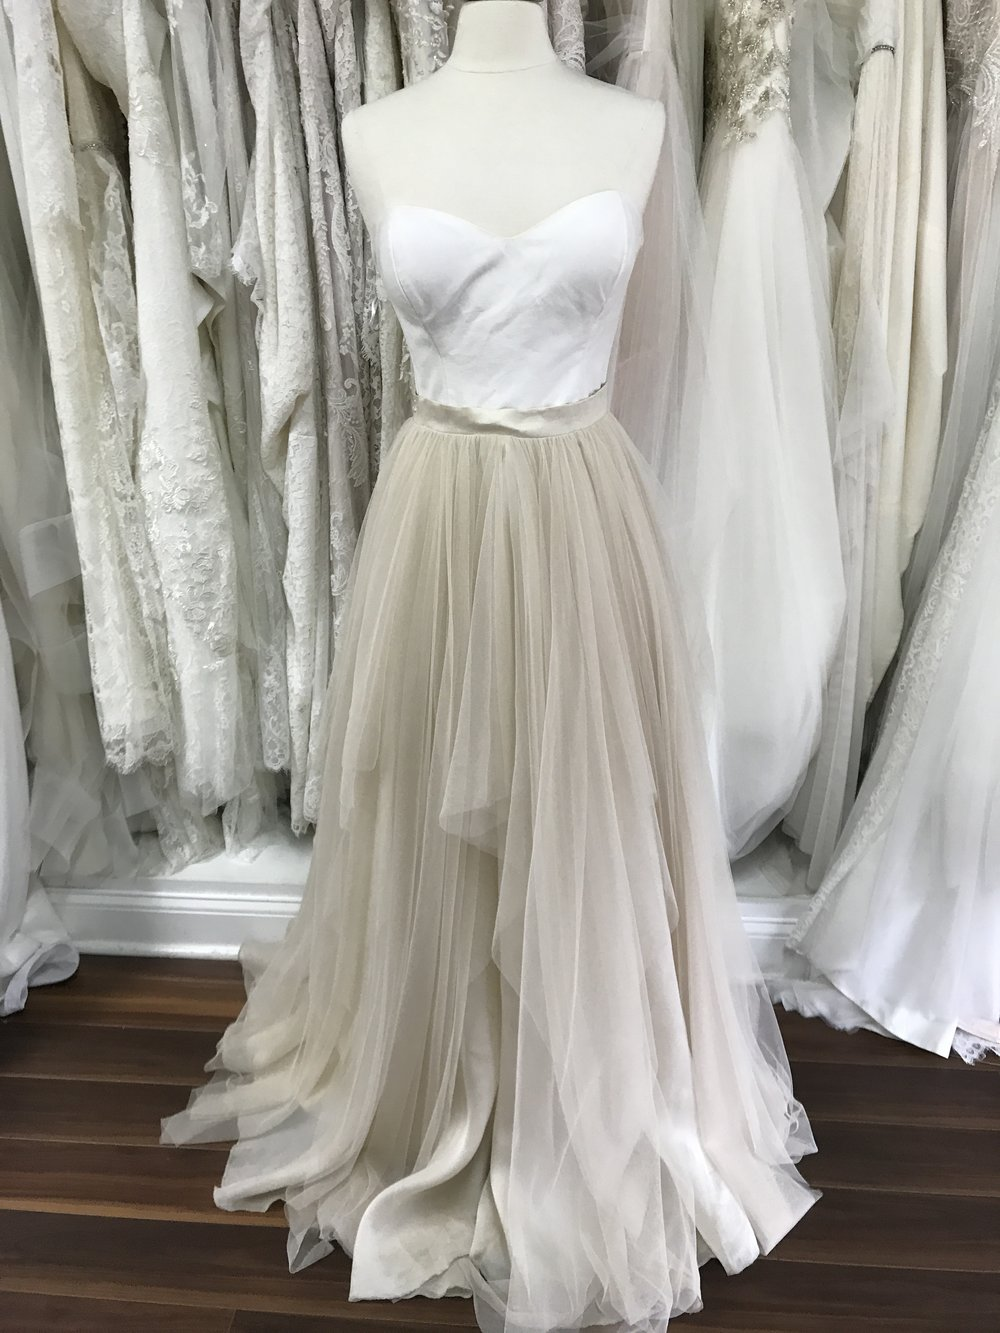 -rebecca-schoneveld-savannah-savannah weddings-weddings-indie-bride-colored dress-wedding planner-ivory and beau-florist-separates-boutique-sweetheart-asymmetrical-savannah-veil-champagne-tulle-gold-.JPG